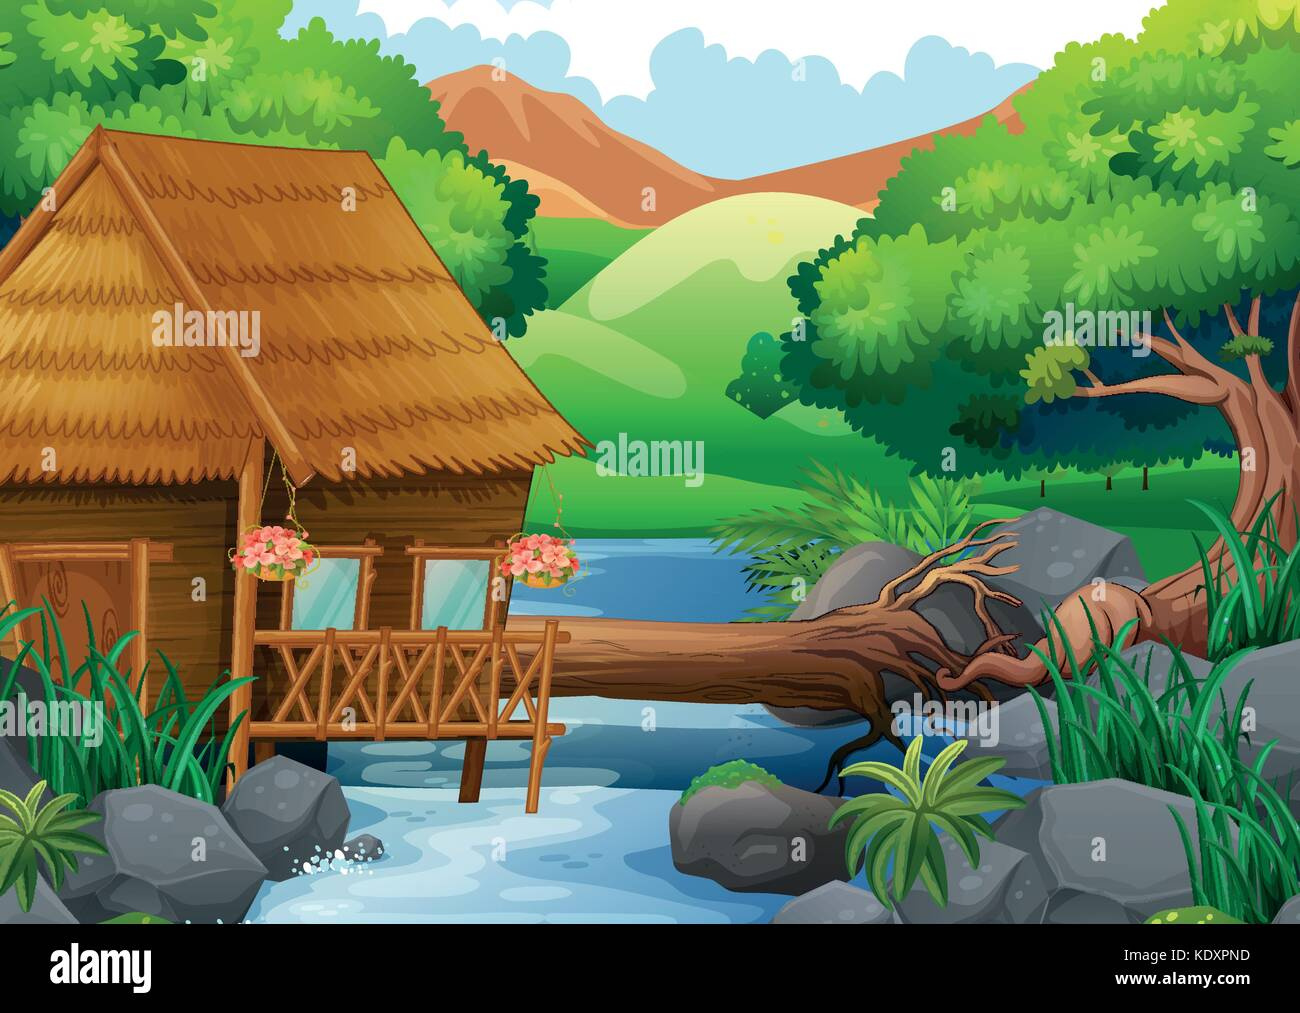 Wood cabin in the forest illustration - Stock Vector